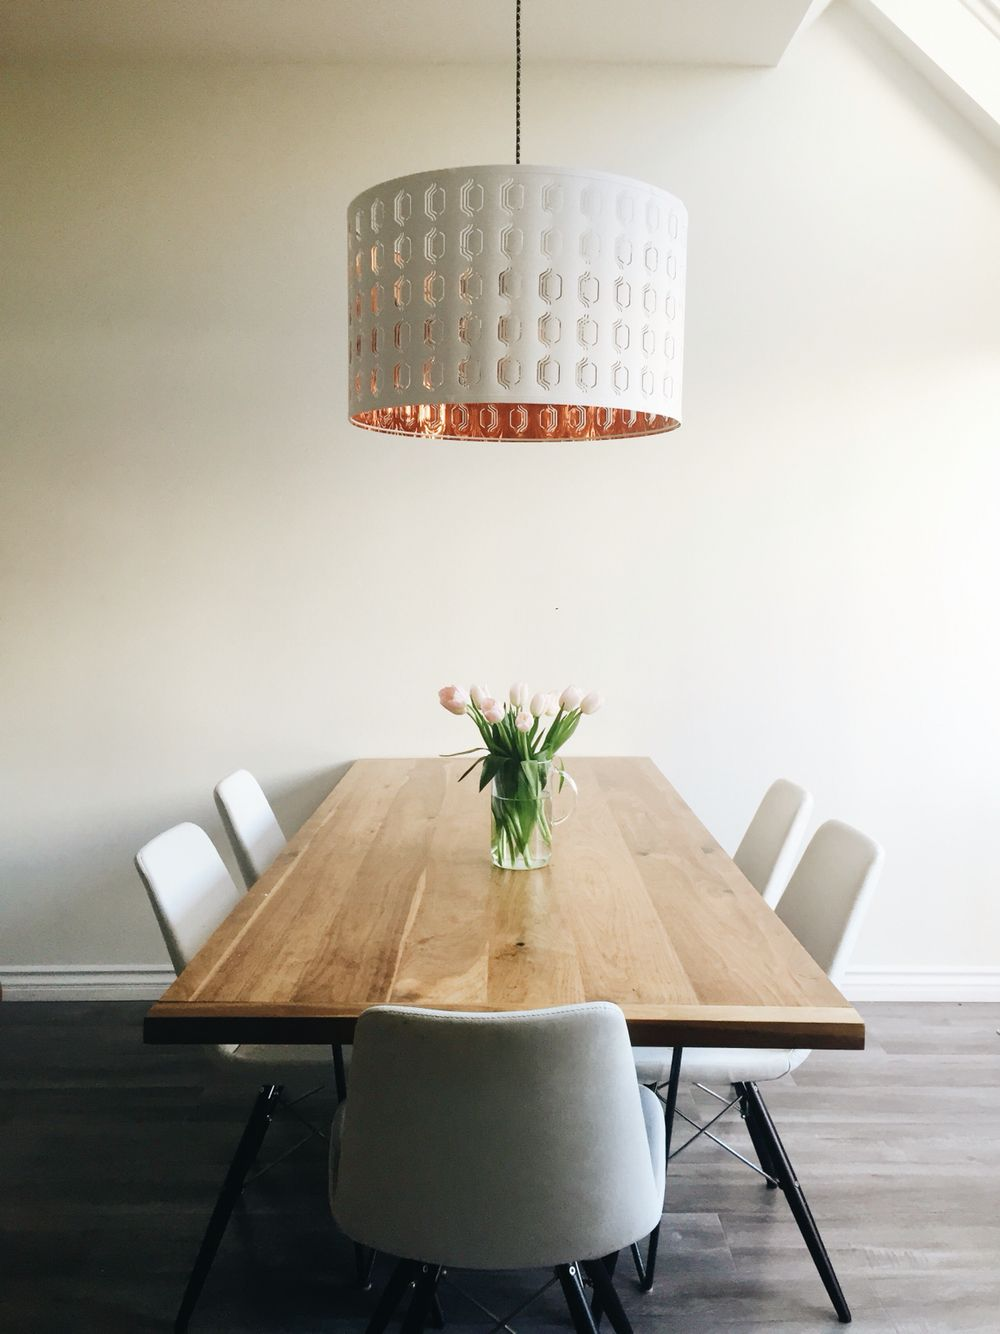 Charmant Minimalist Dining Room With IKEA Pendant Light In Copper And White  #minimalist #myhouse